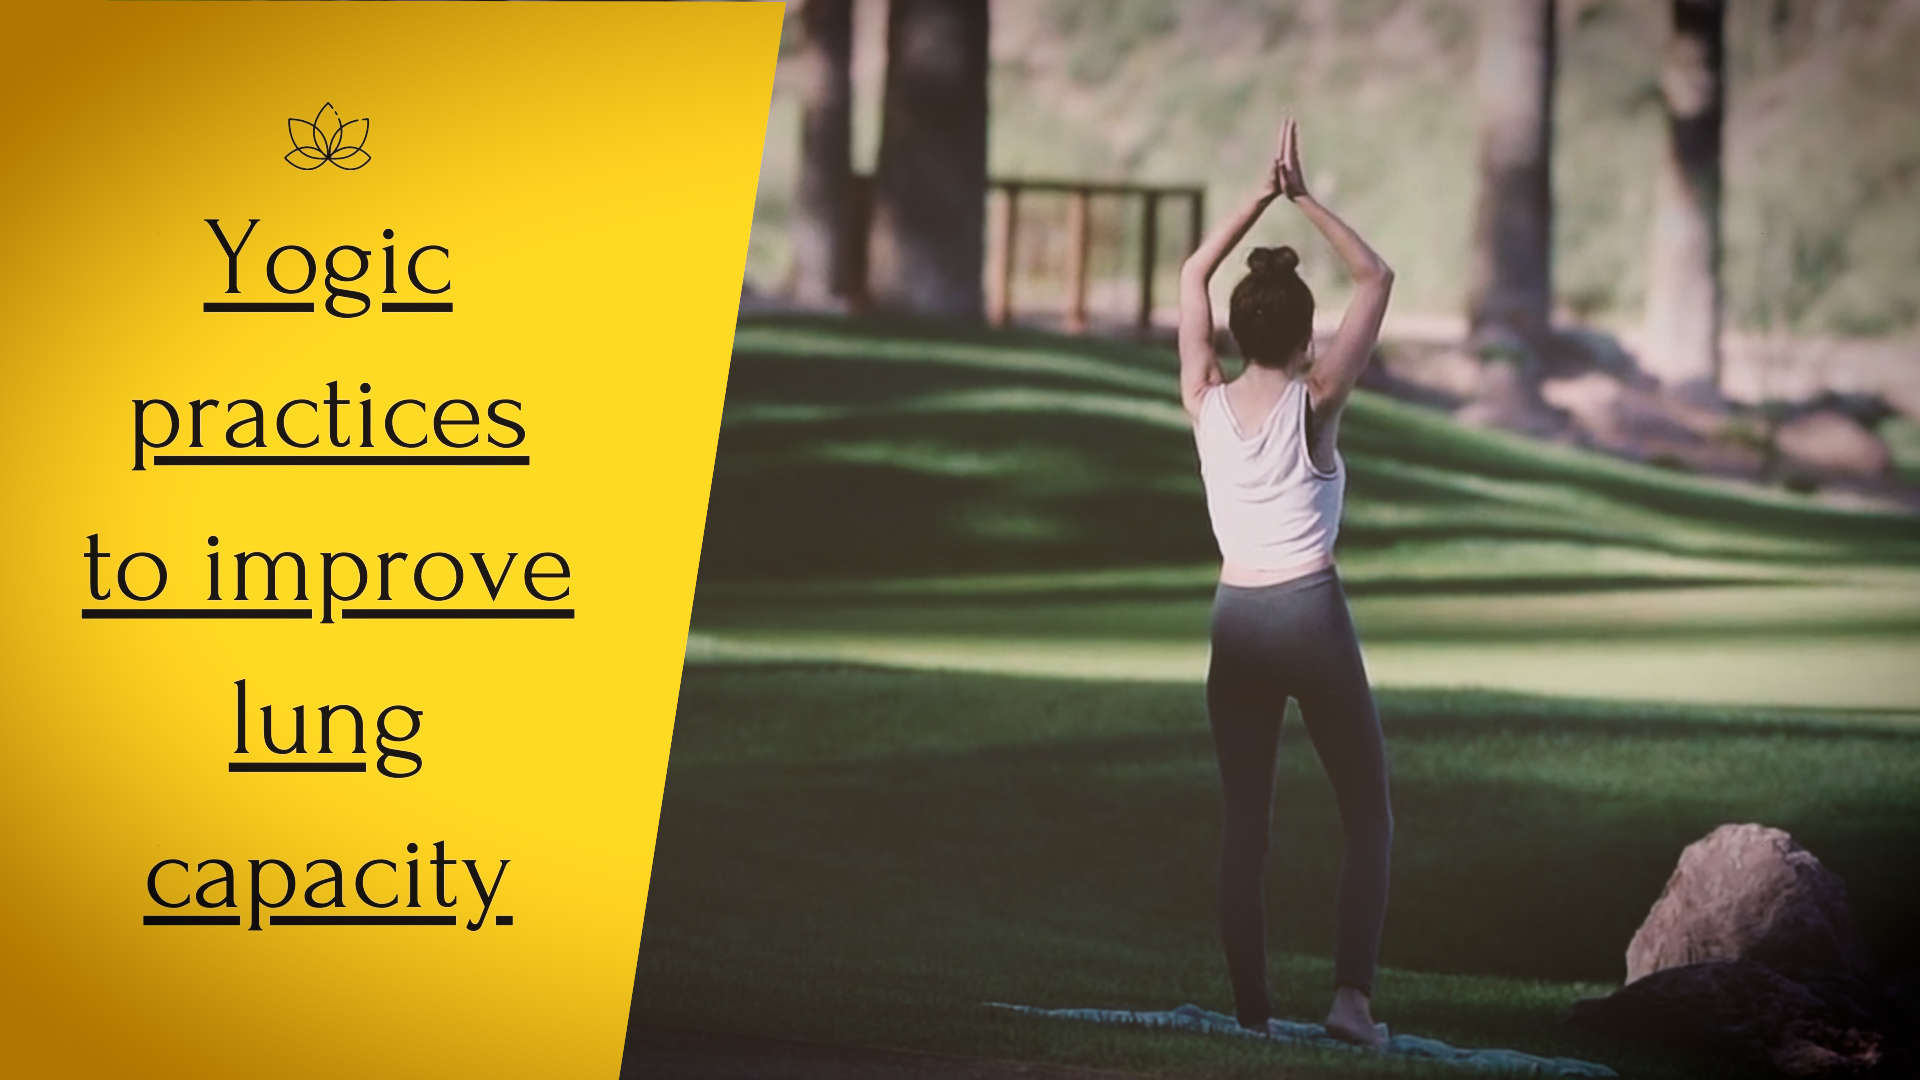 yogic-practices-to-improve-lung-capacity